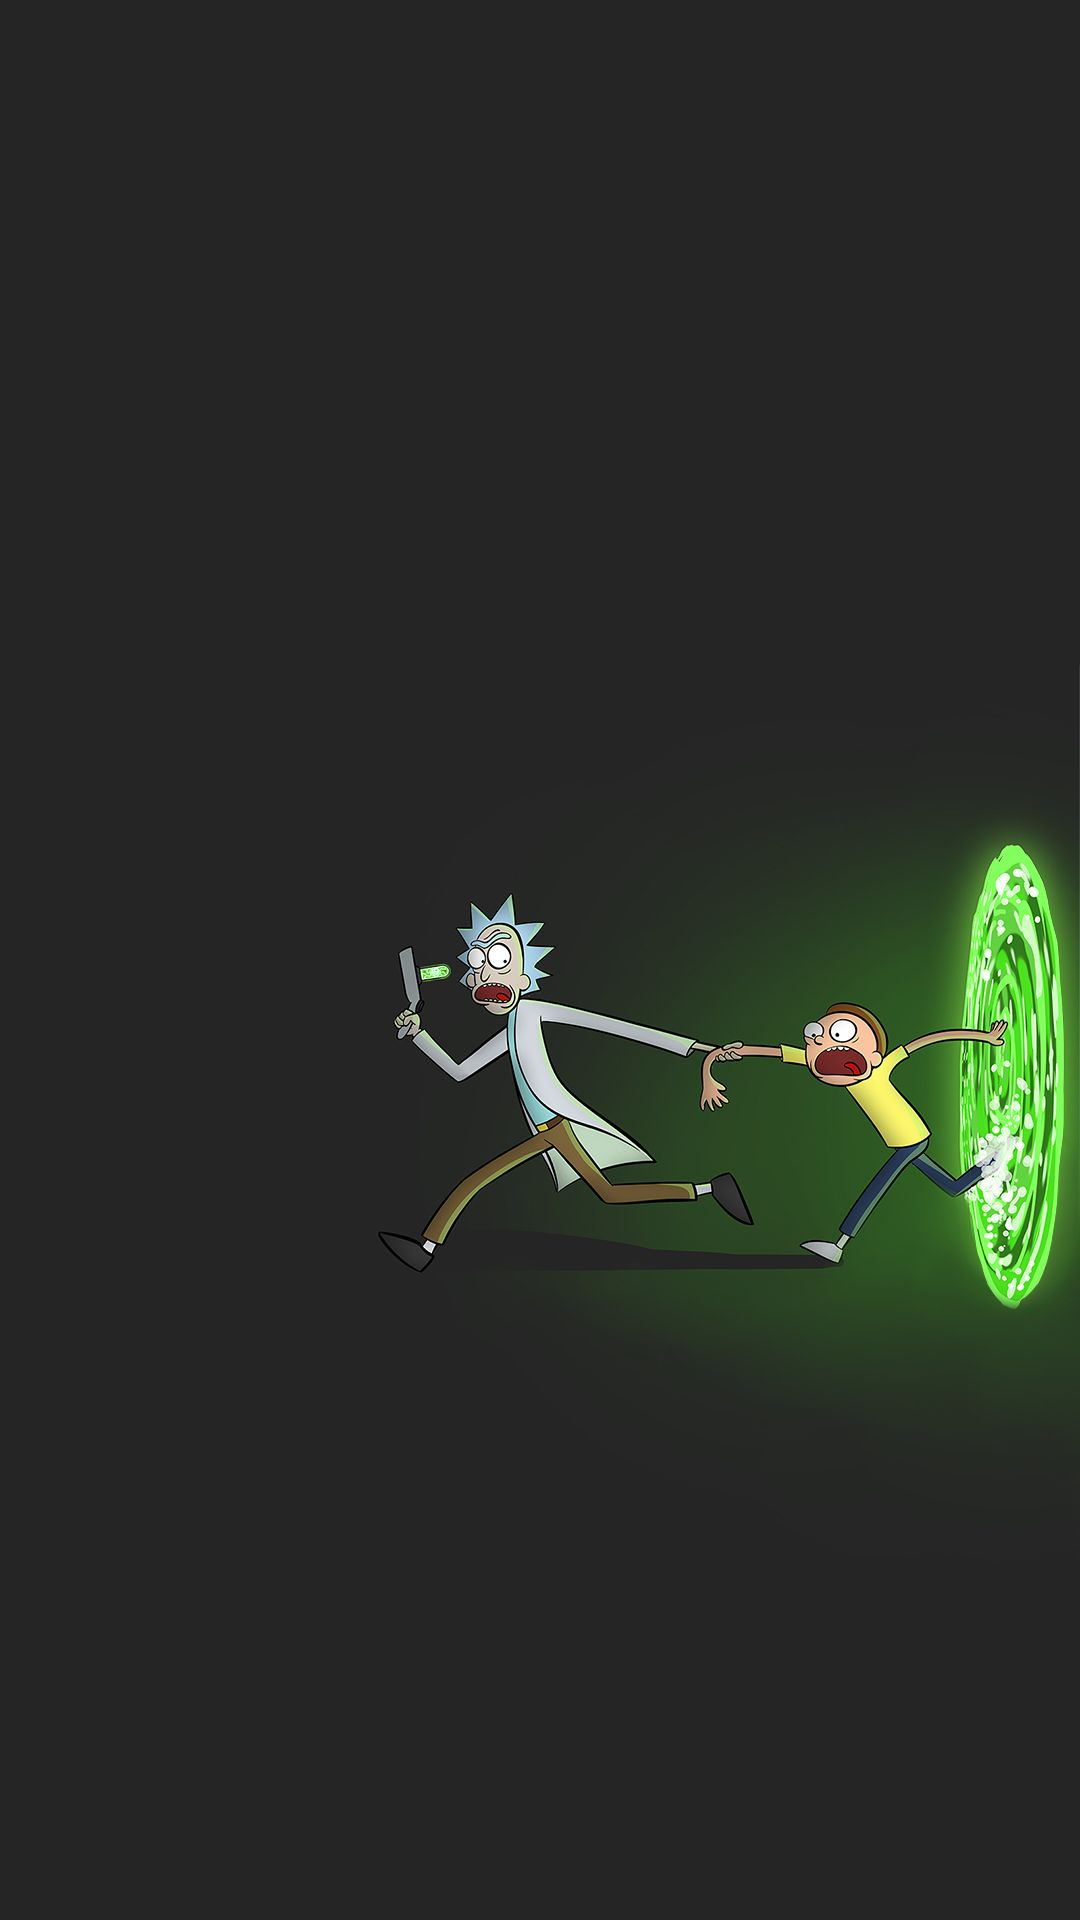 Rick And Morty Iphone Wallpaper Black Keren Papeis De Parede